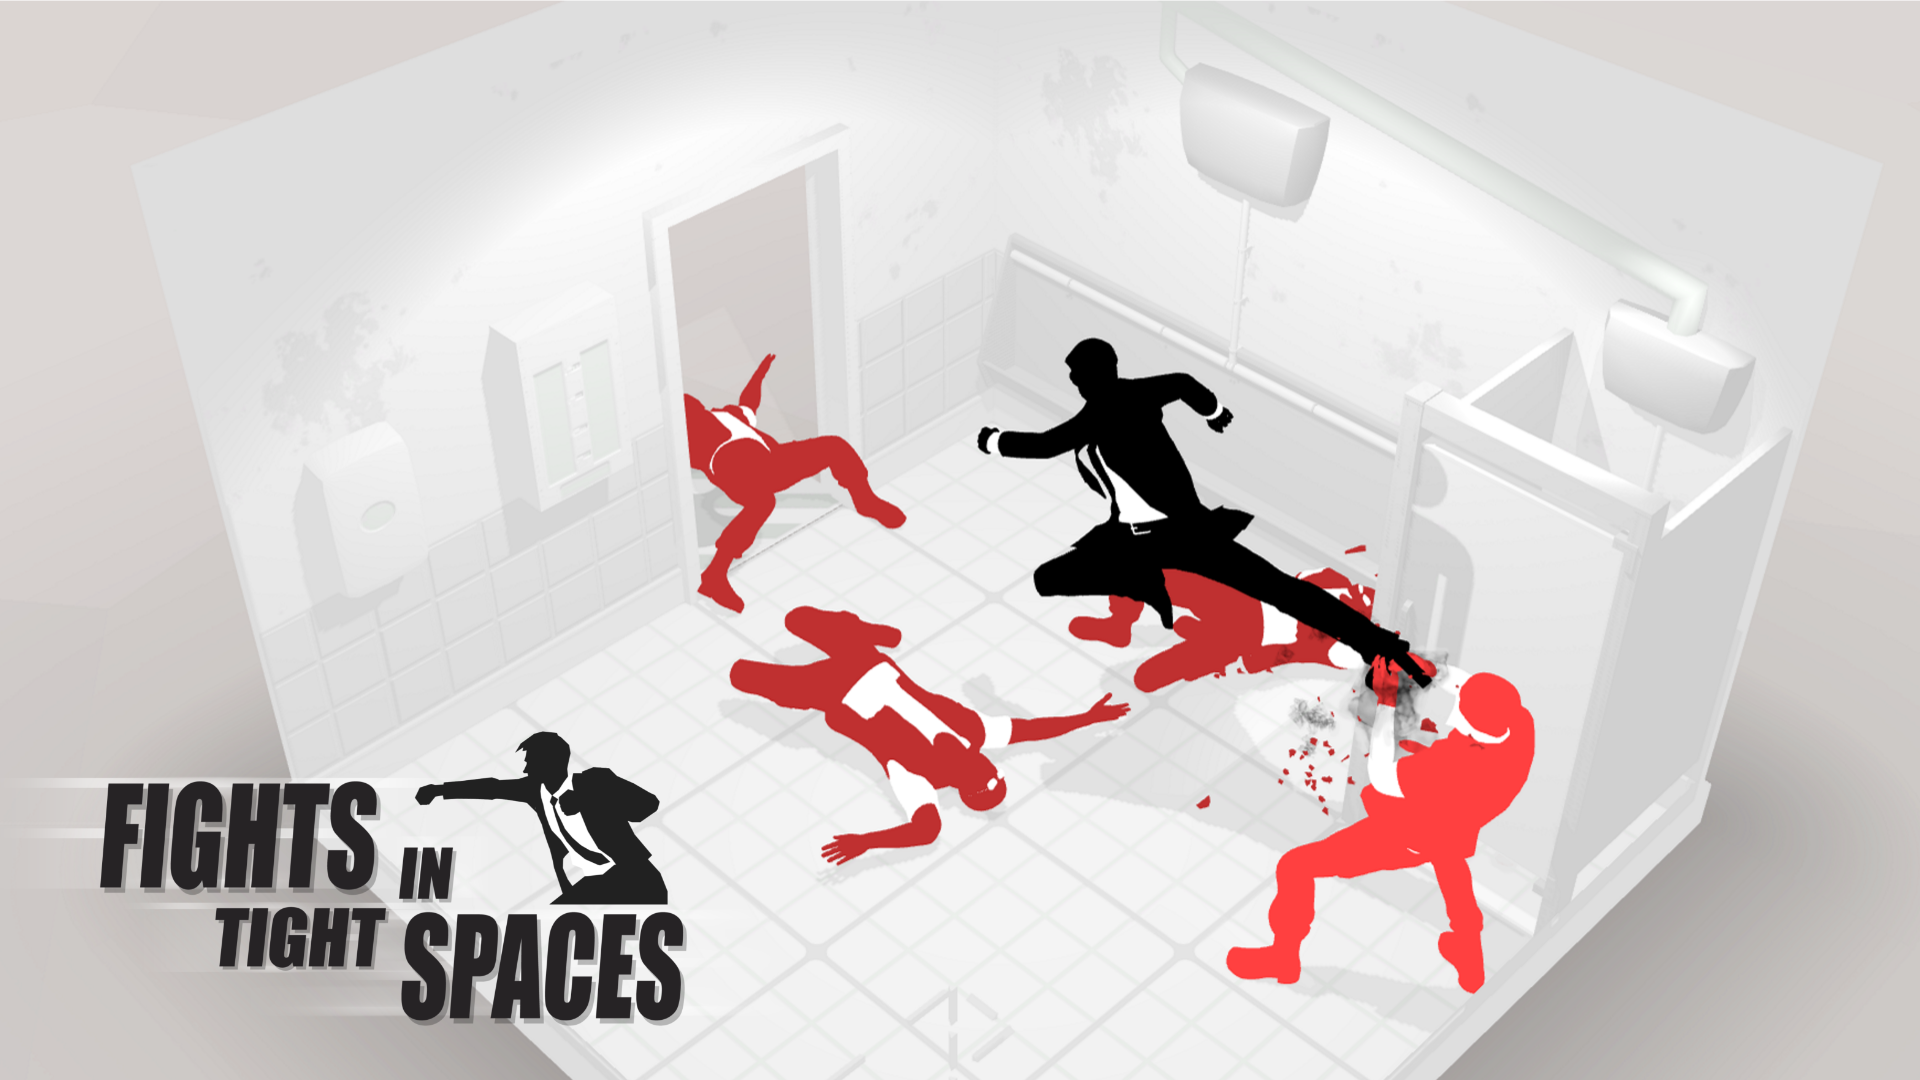 Fights in Tight Spaces logo